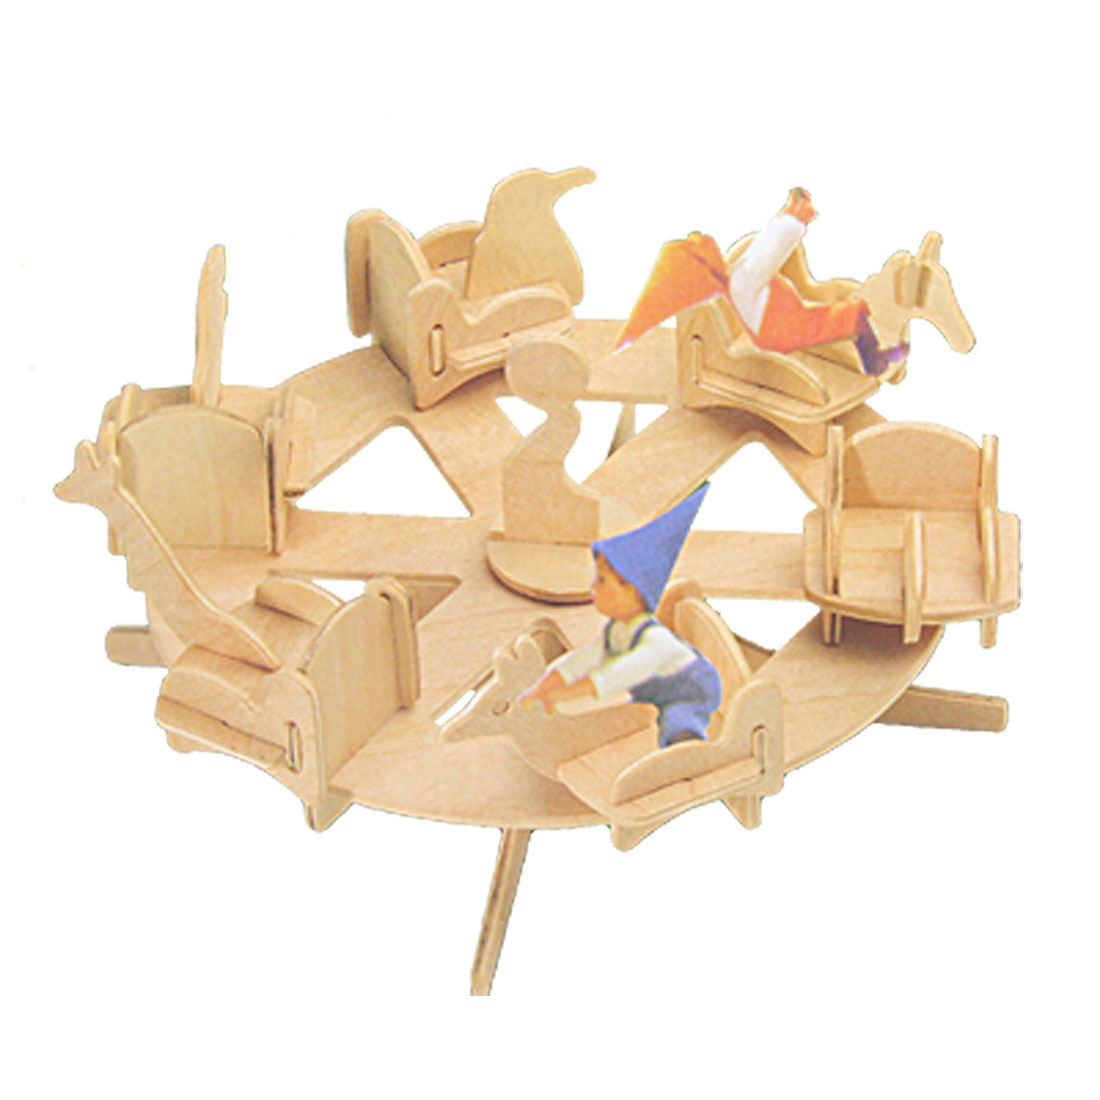 Wooden Roundabout Turntable Turnplate 3D Puzzle DIY Toy